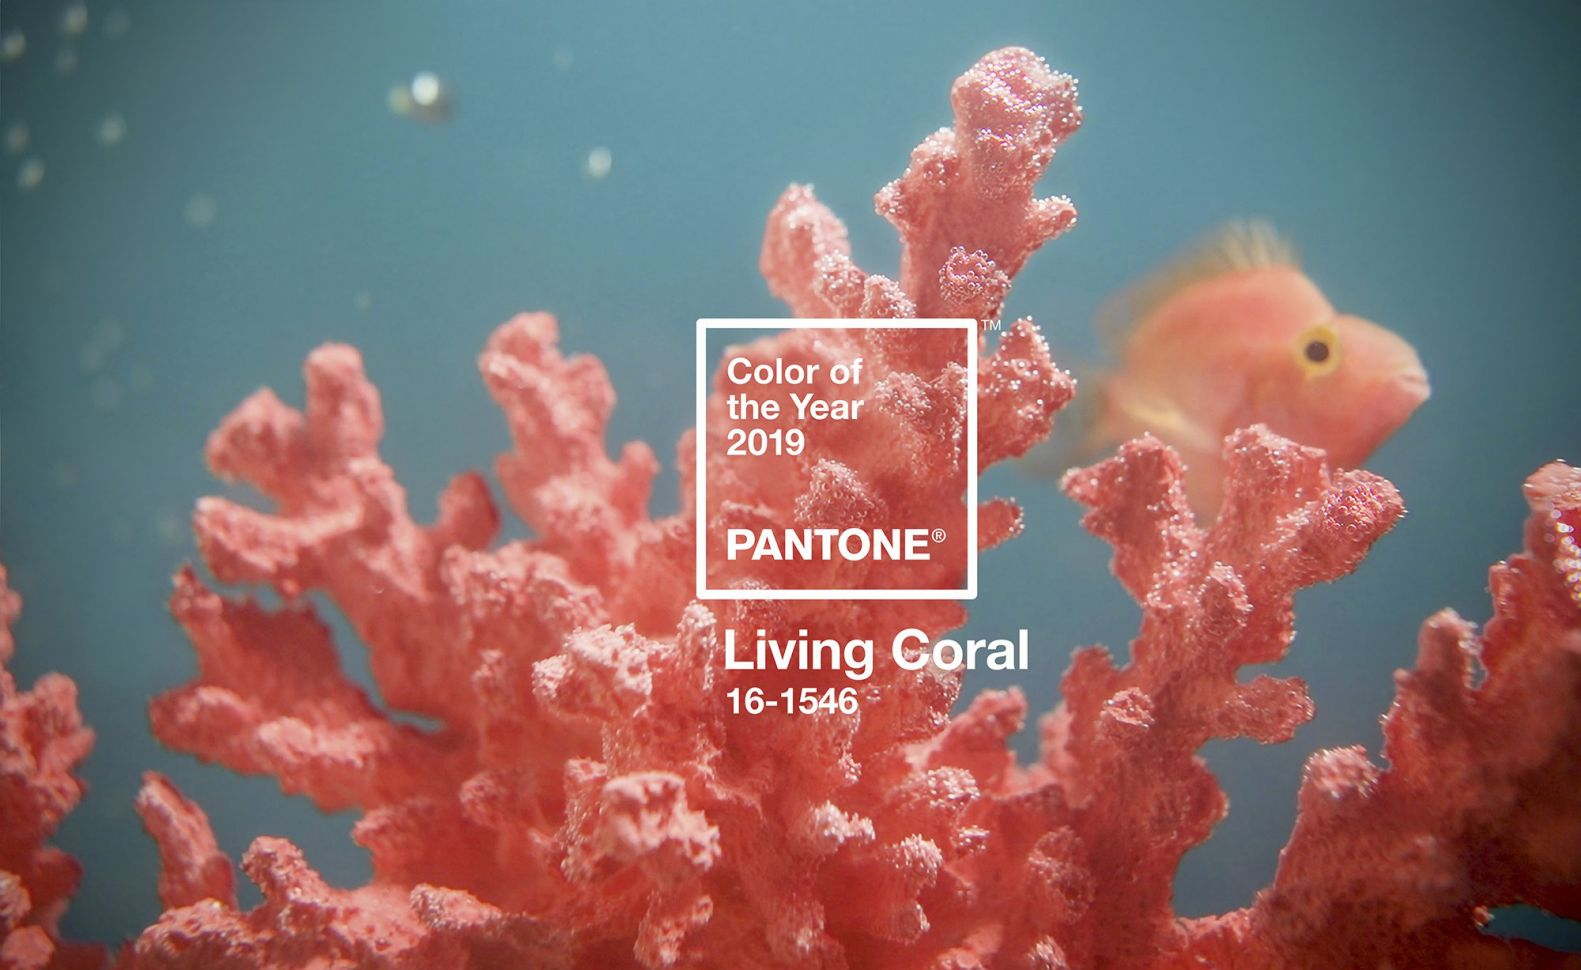 Color of the Year 2019: Living Coral.